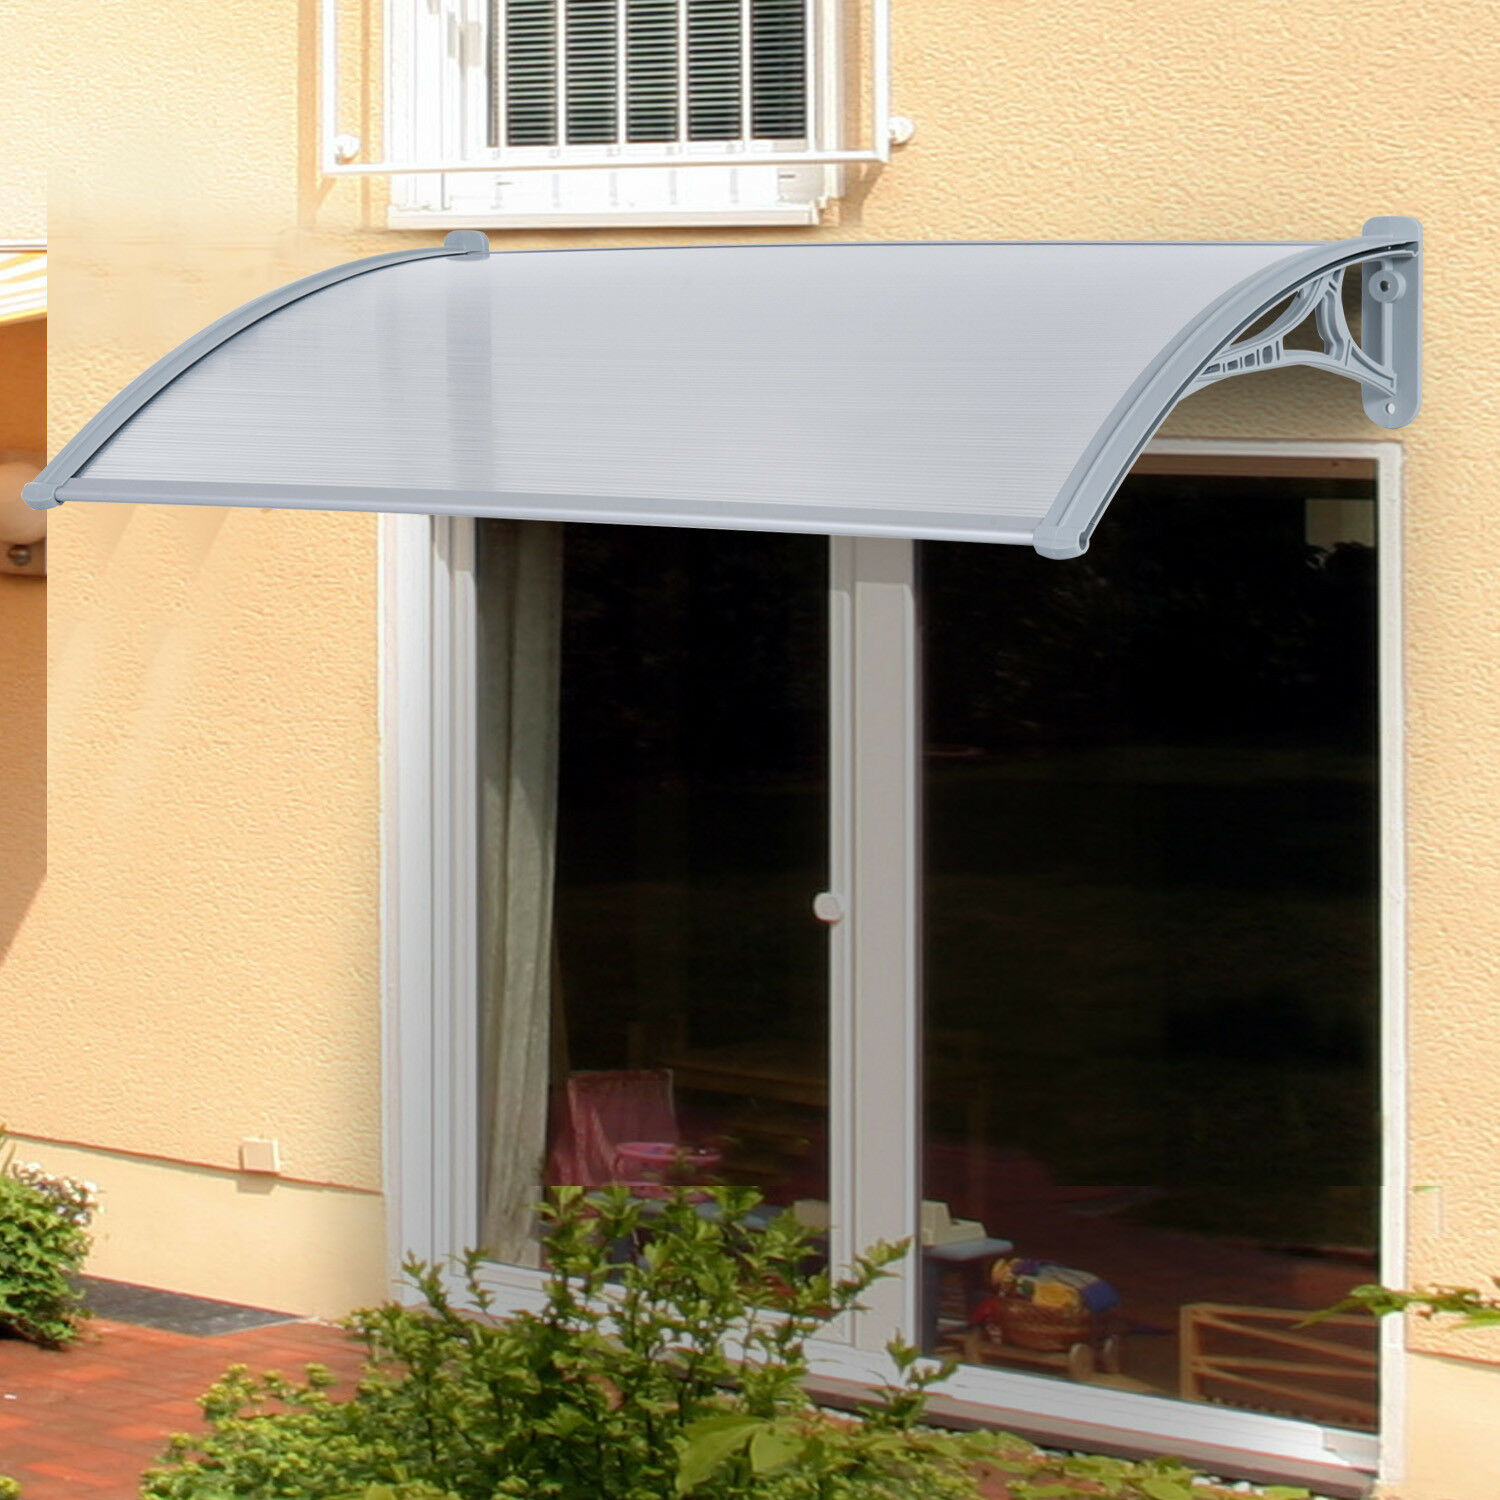 Outsunny B70 040 140cm X 70cm Door Awning Cover Bracket Canopy Patio Porch Window Transparent Silver For Sale Online Ebay